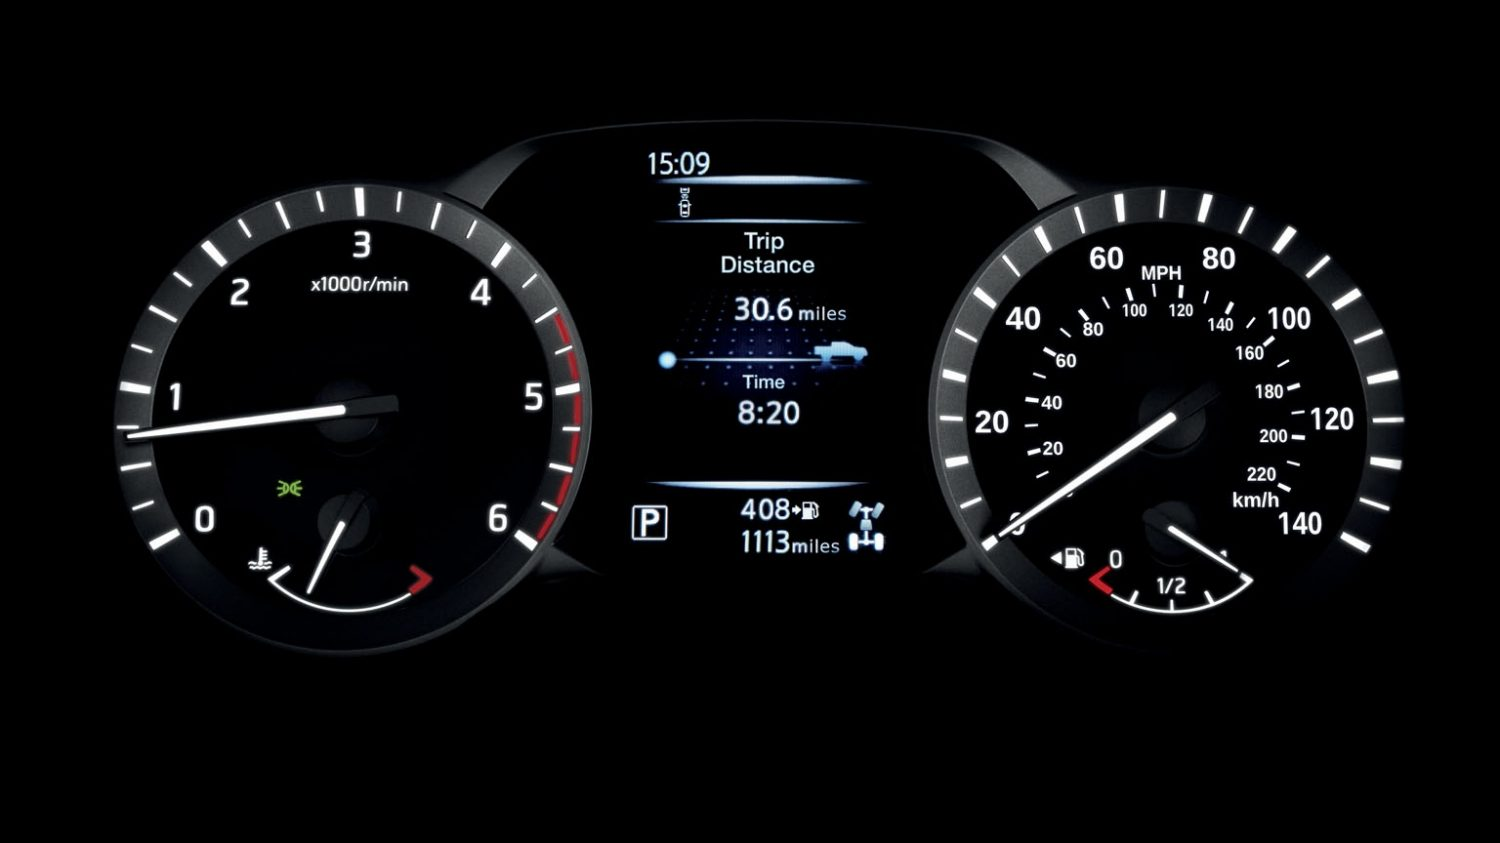 Nissan Navara - Trip distance display